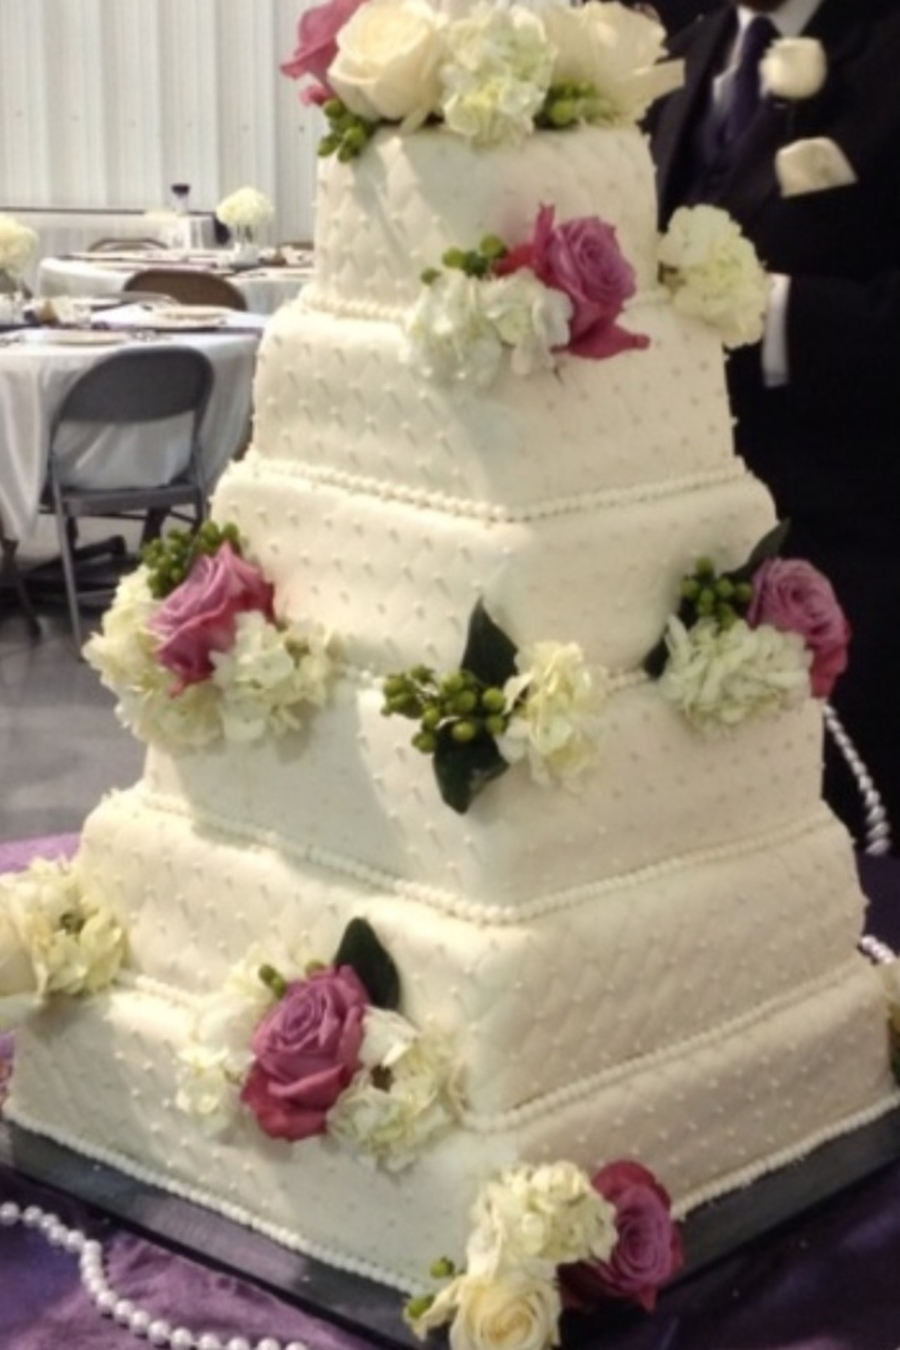 Karyn's Wedding Cake on Cake Central